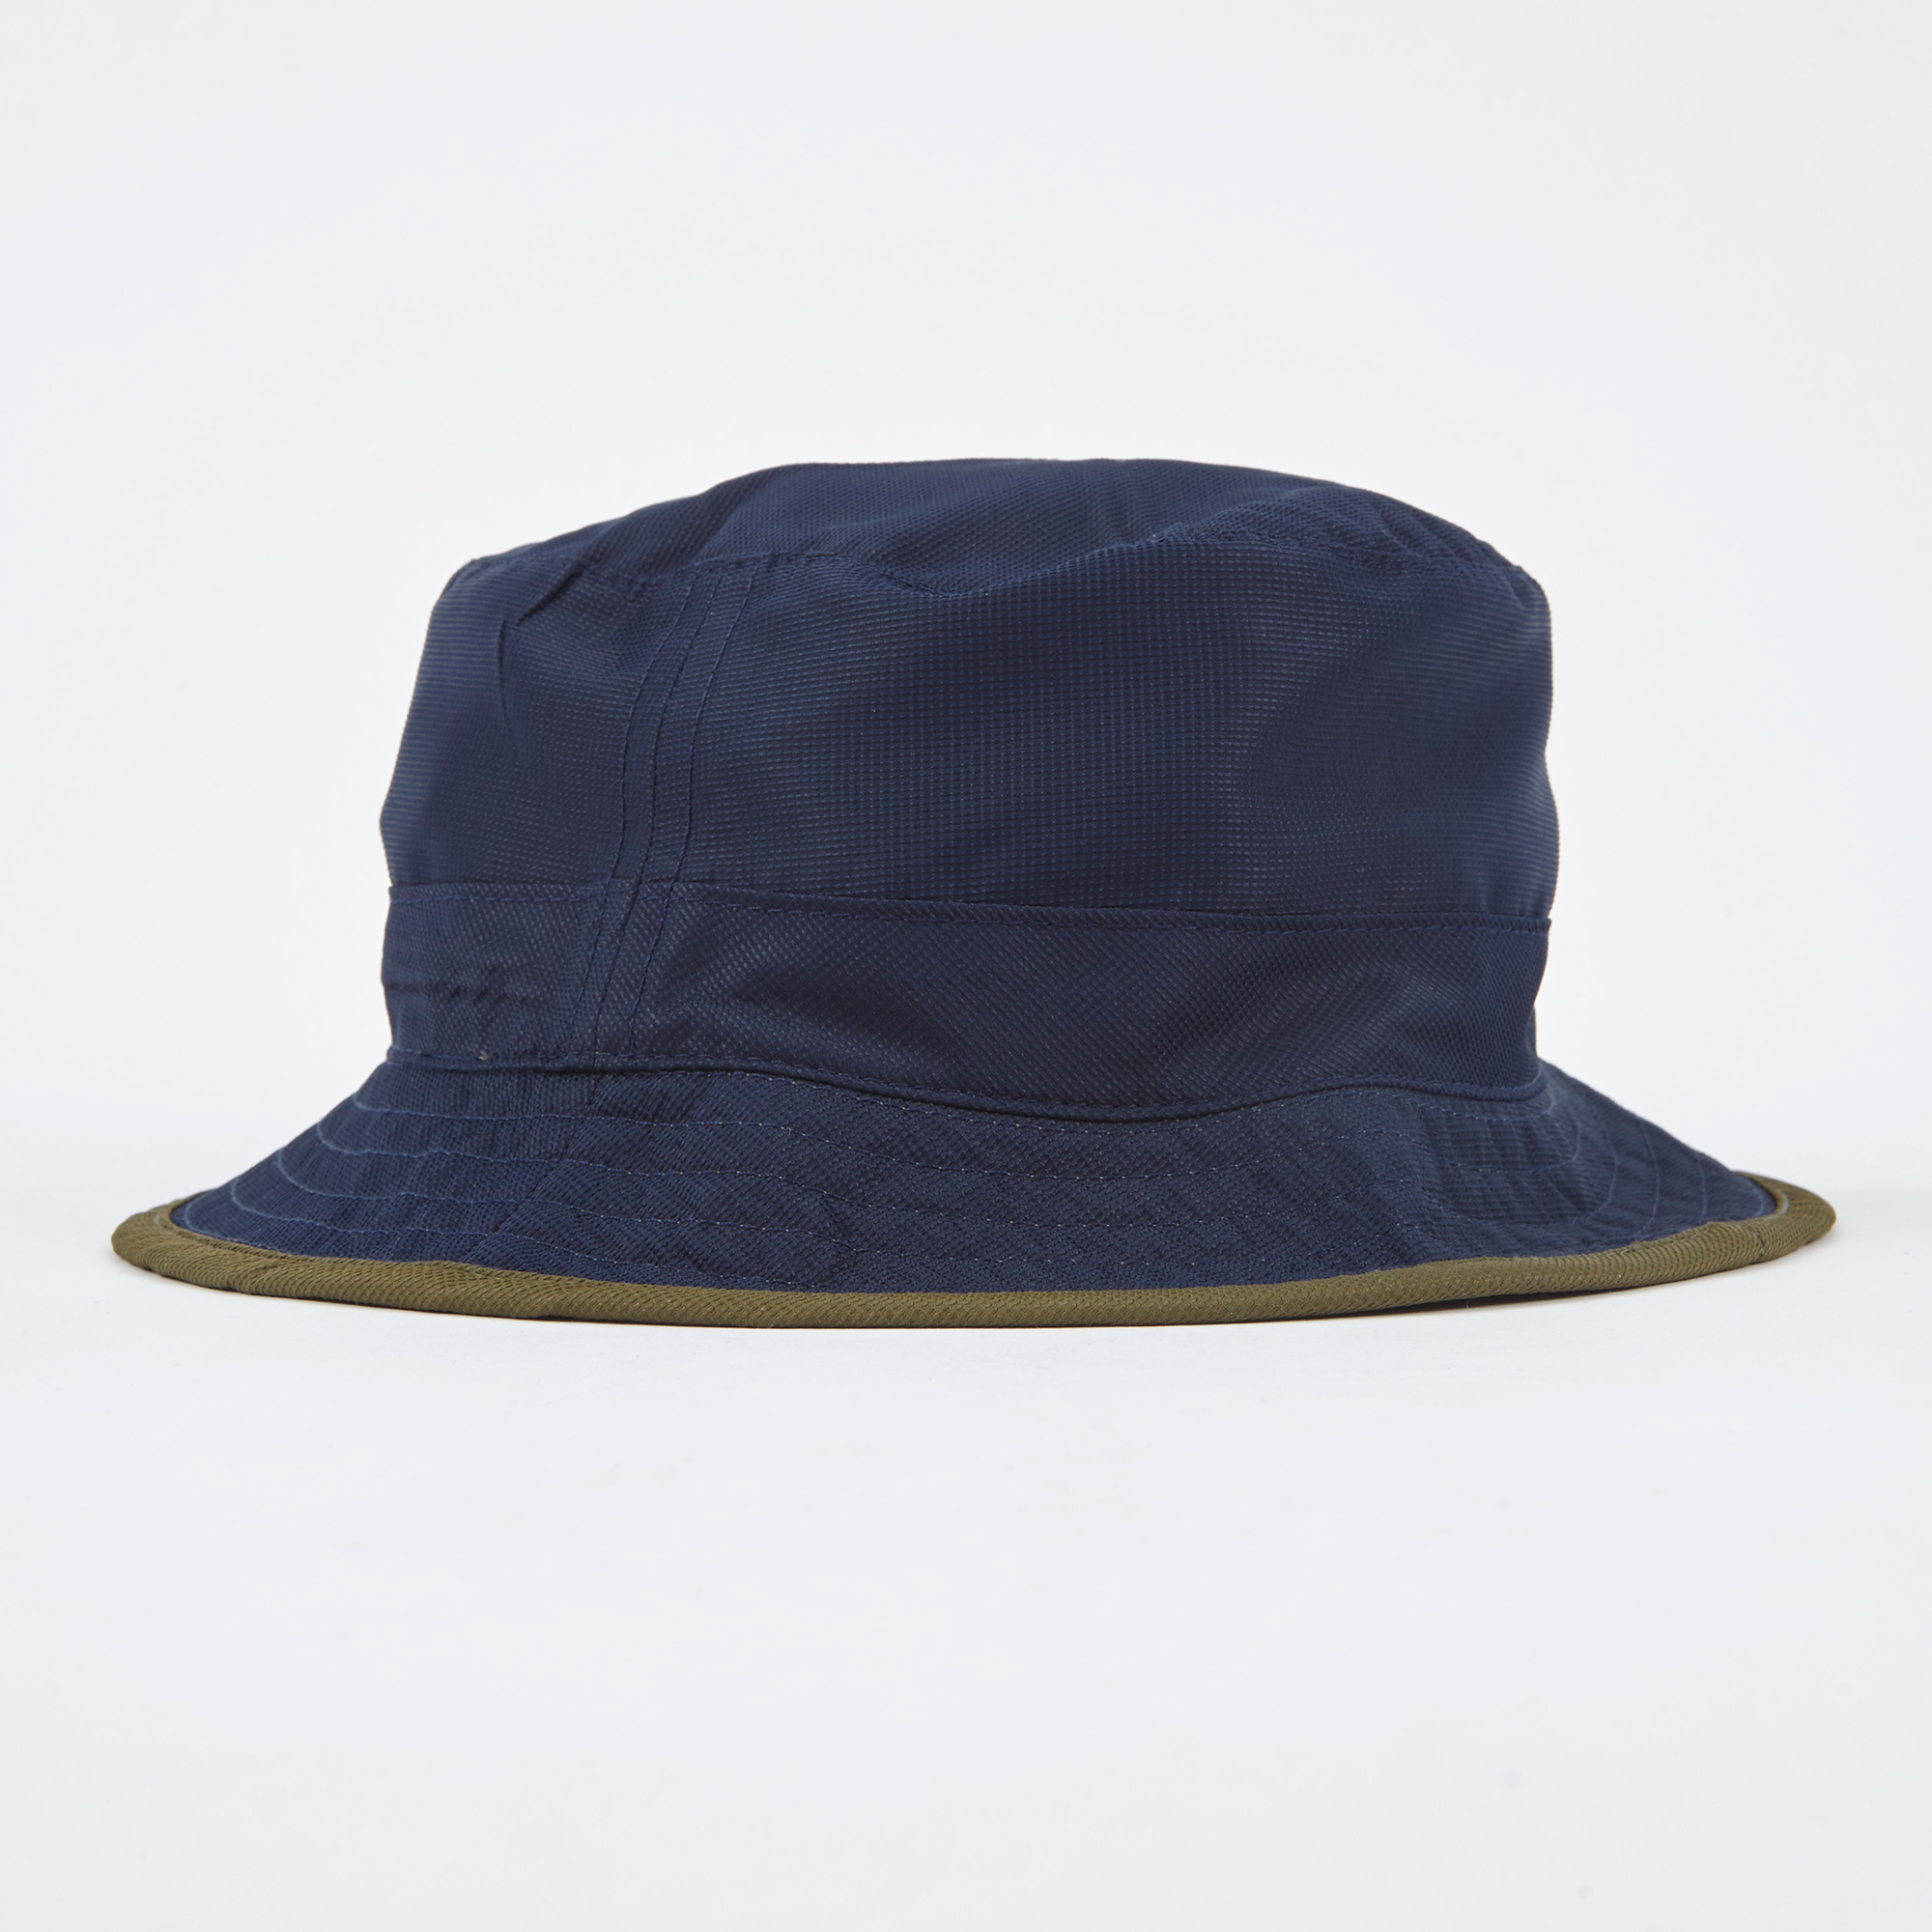 9d42a31c1cbbe8 Norse Projects Foldable Light Ripstop Bucket Hat - Dried Olive